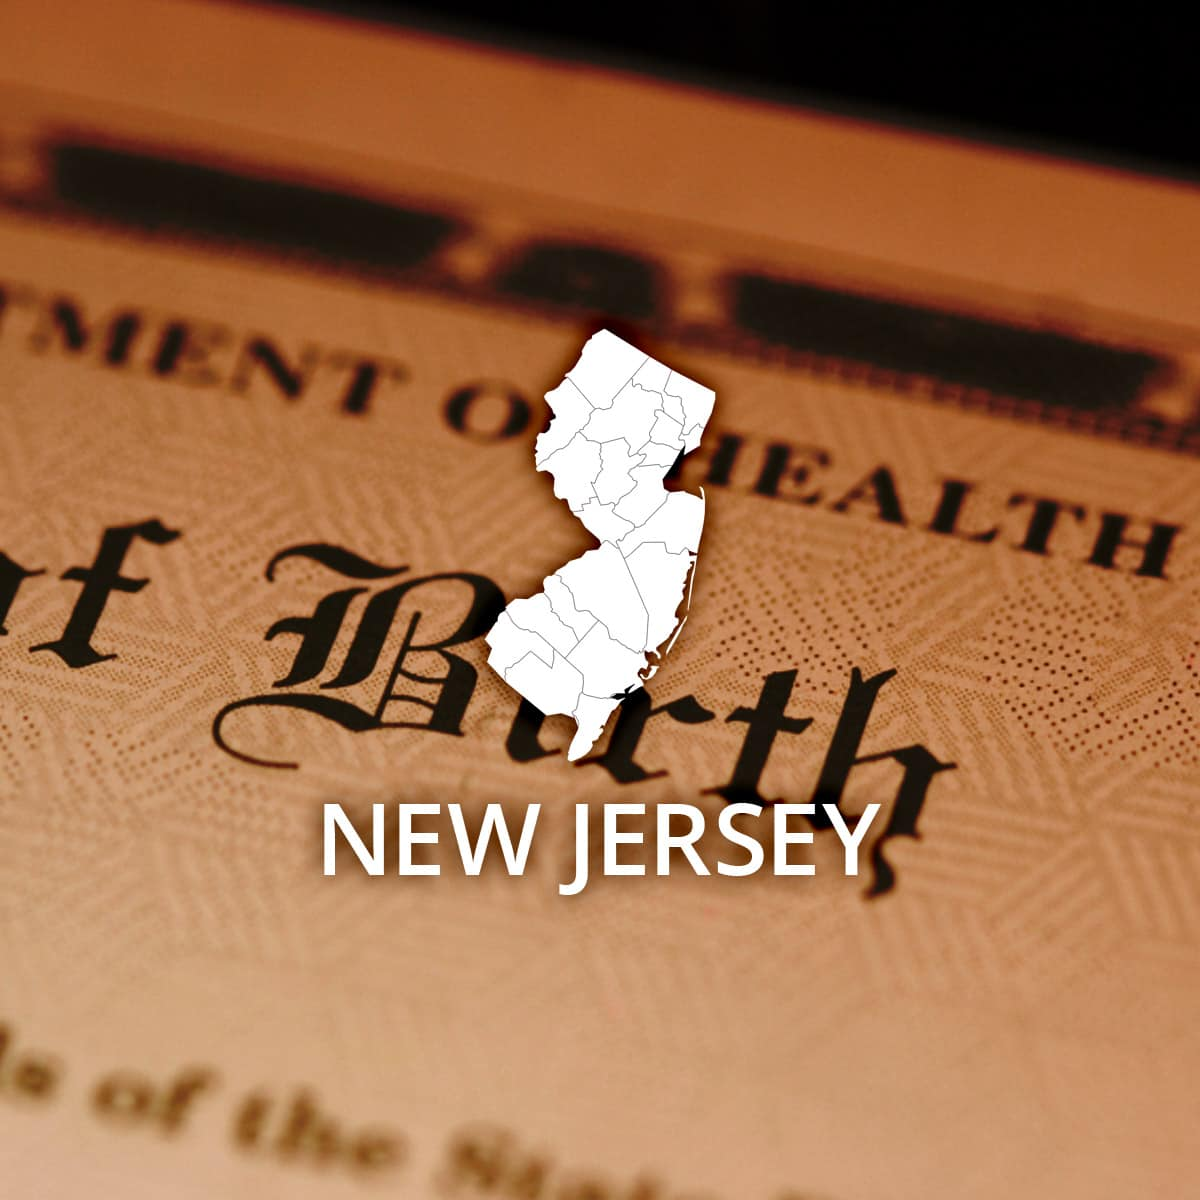 Where to Obtain a New Jersey Birth Certificate